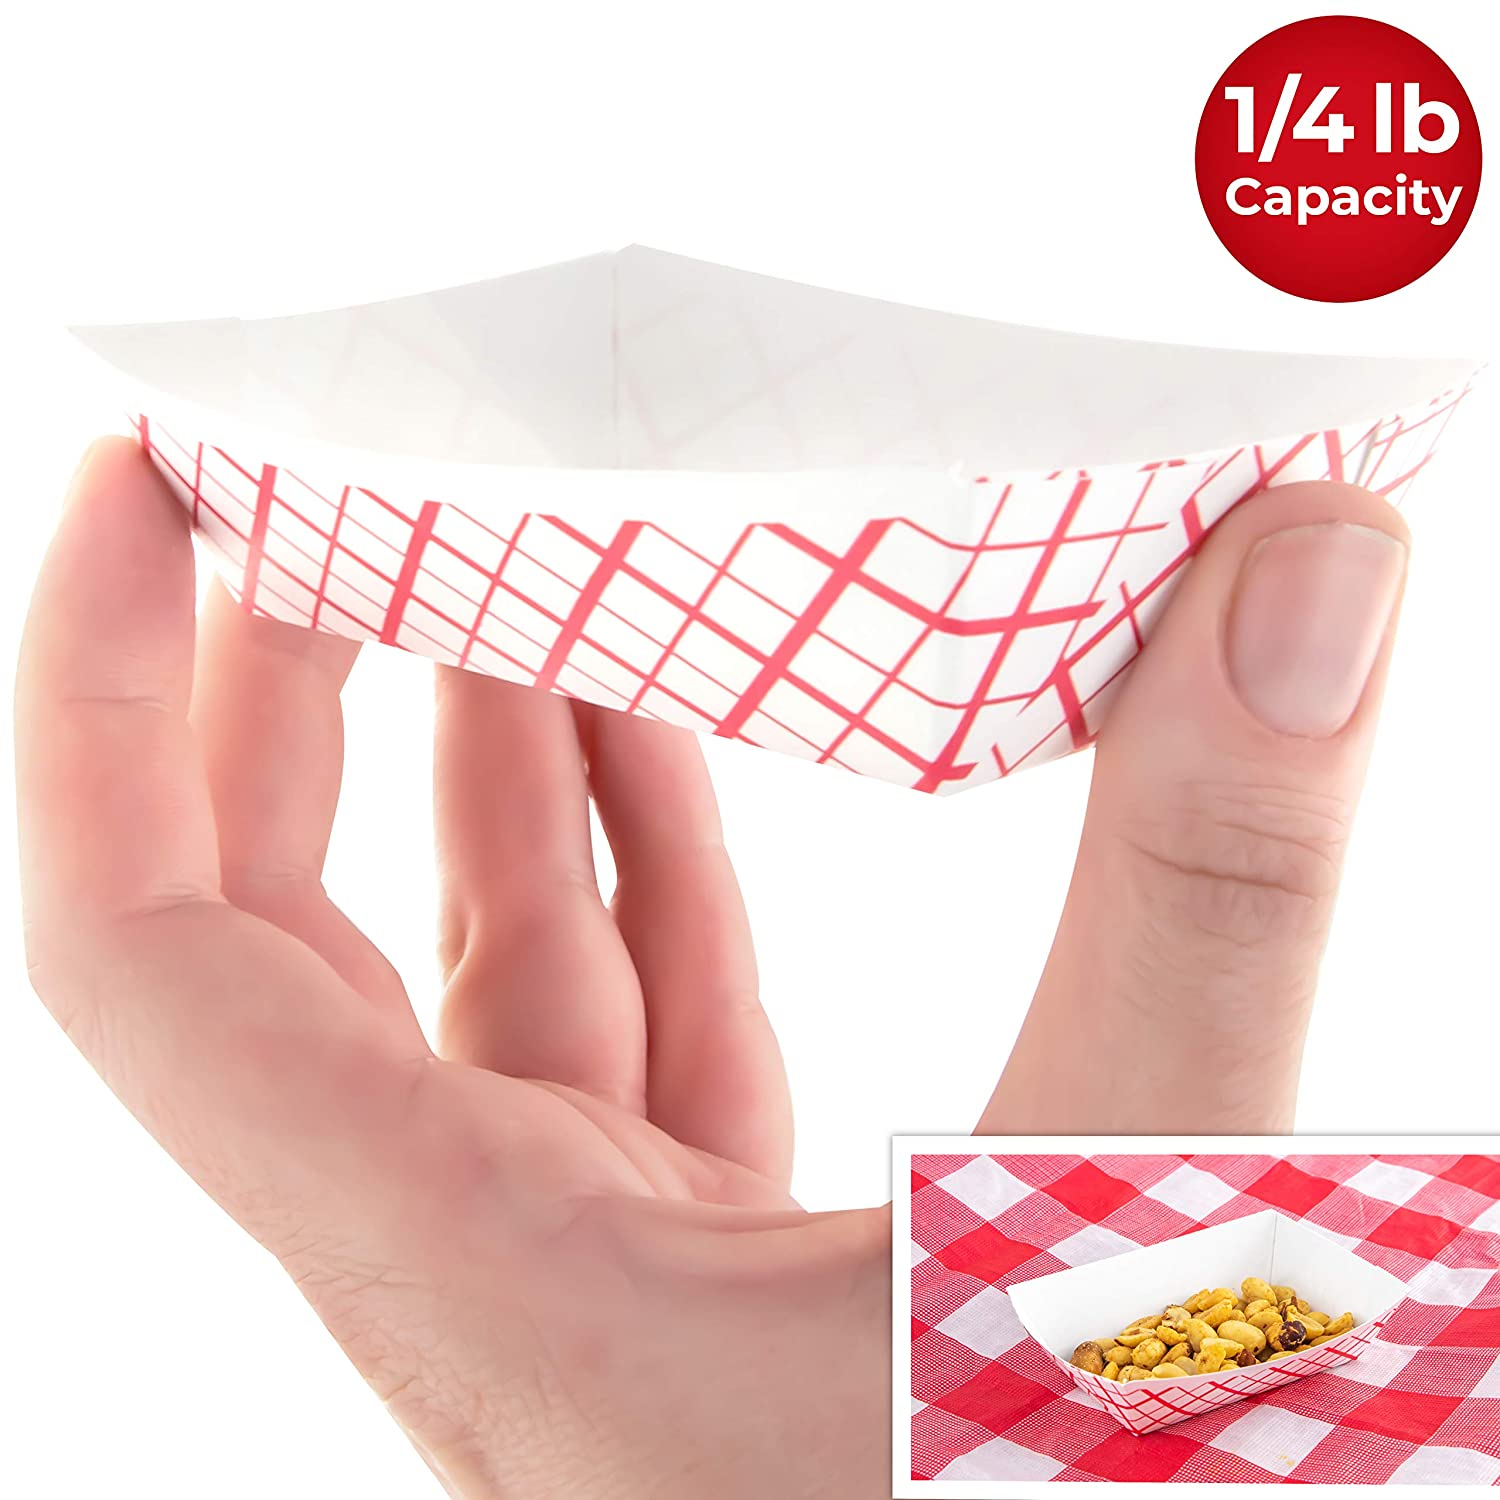 Heavy Duty, Grease Resistant Mini Paper Food Trays 200 Pack. Recyclable, Coated Paperboard Basket Ideal for Festival, Carnival and Concession Stand Condiments and Small Snacks